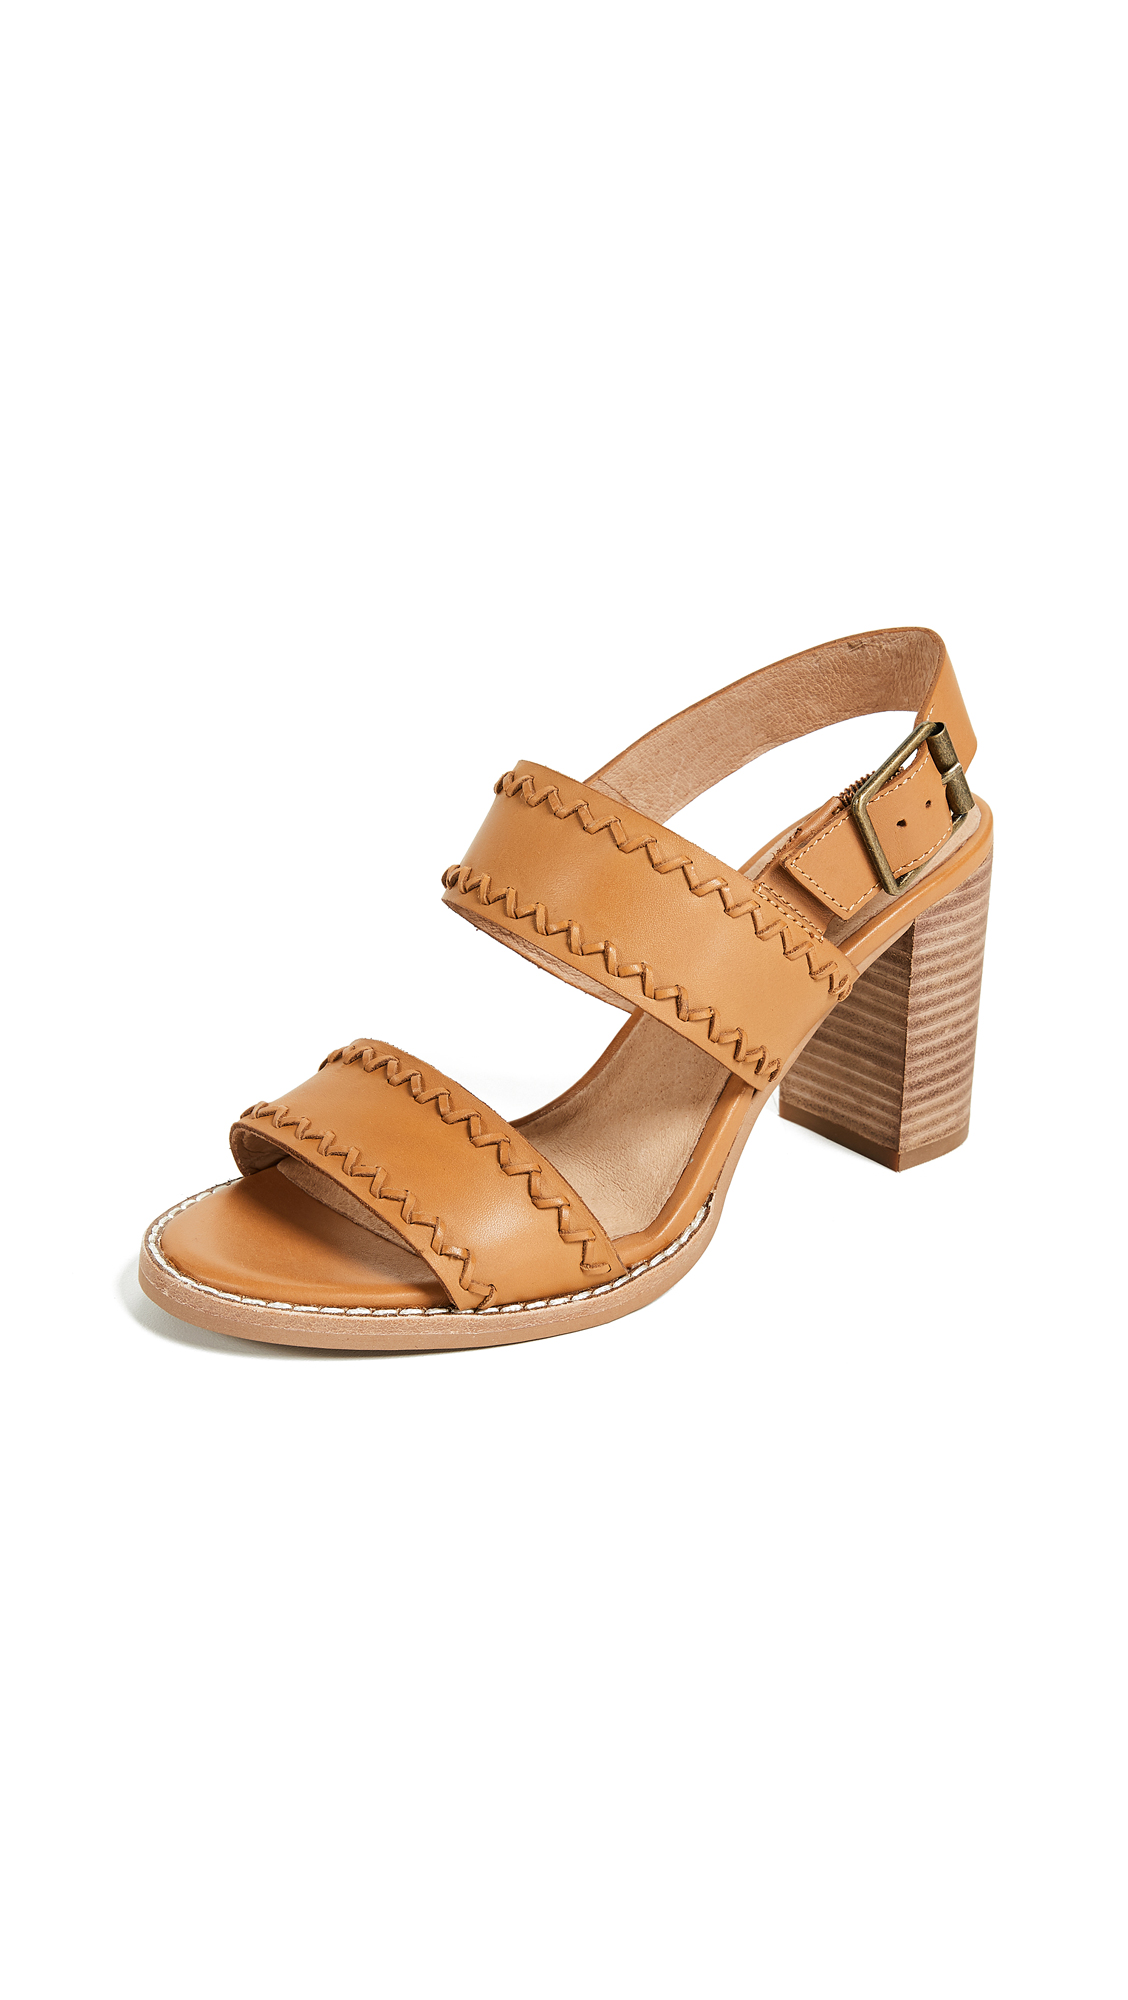 Madewell The Angie Sandals - Desert Camel